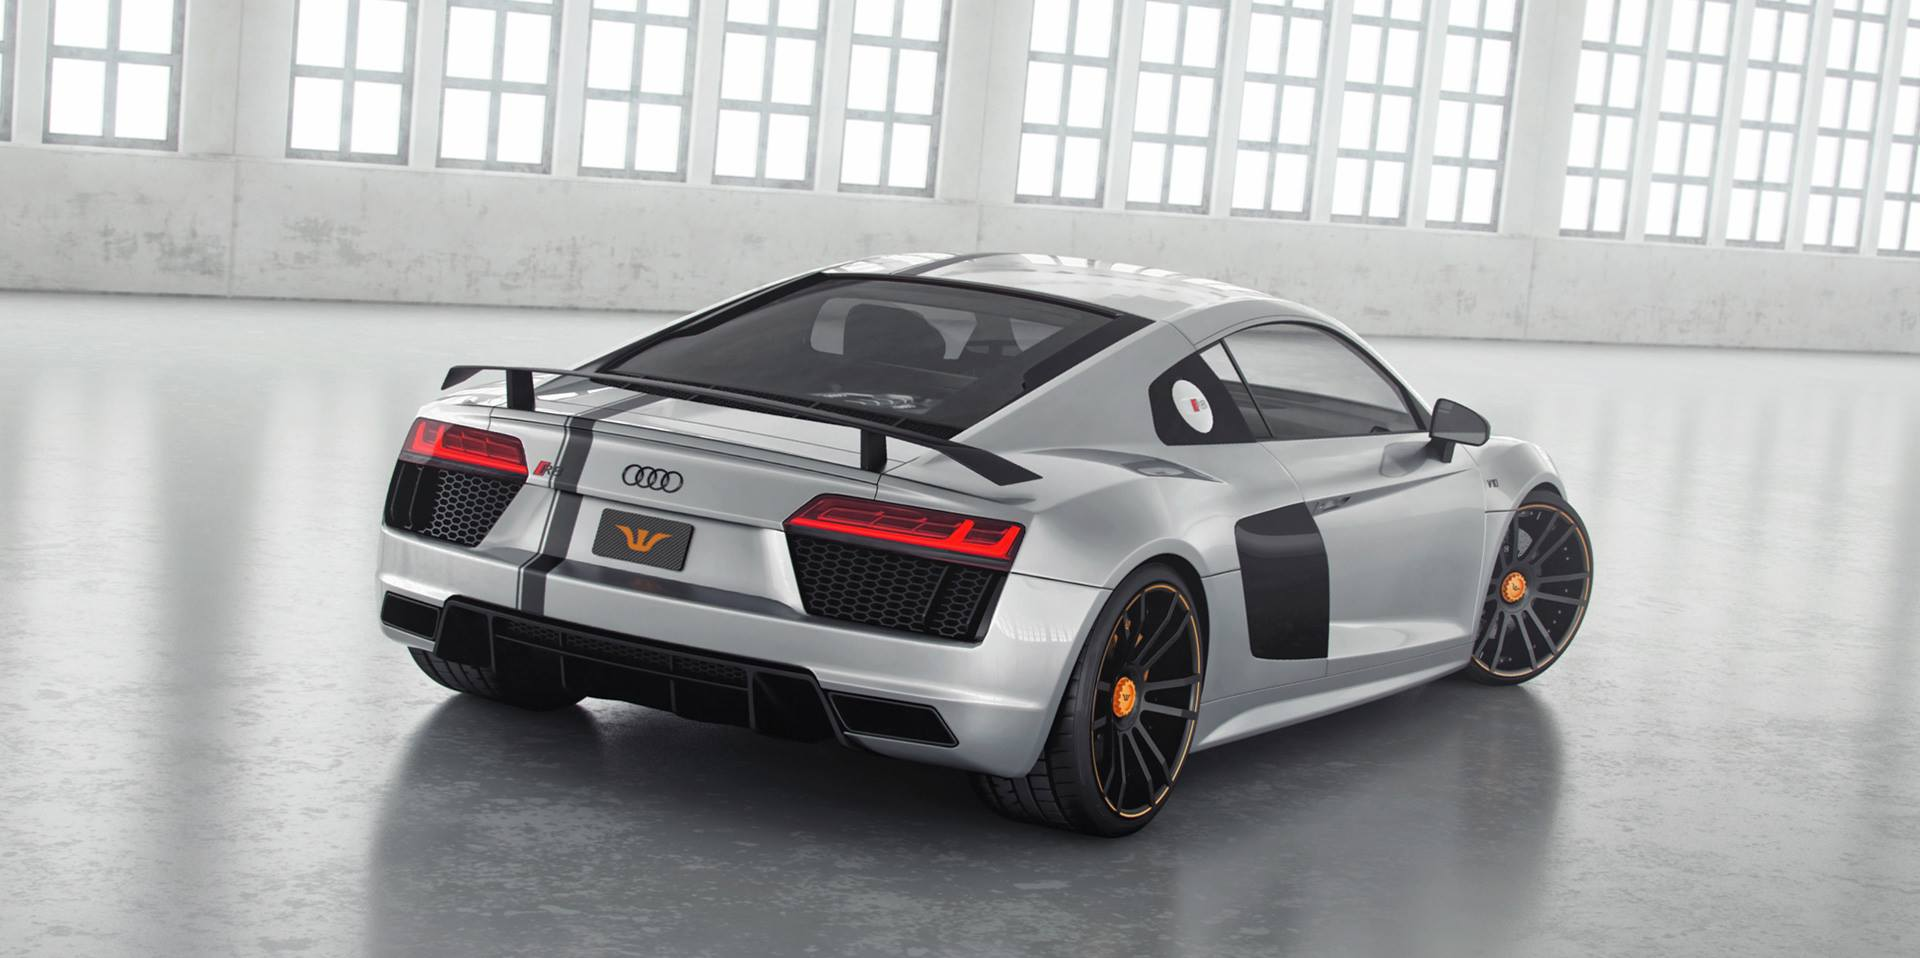 2017 Audi R8 by Wheelsandmore Has 850 HP and Looks Decent - photo ...